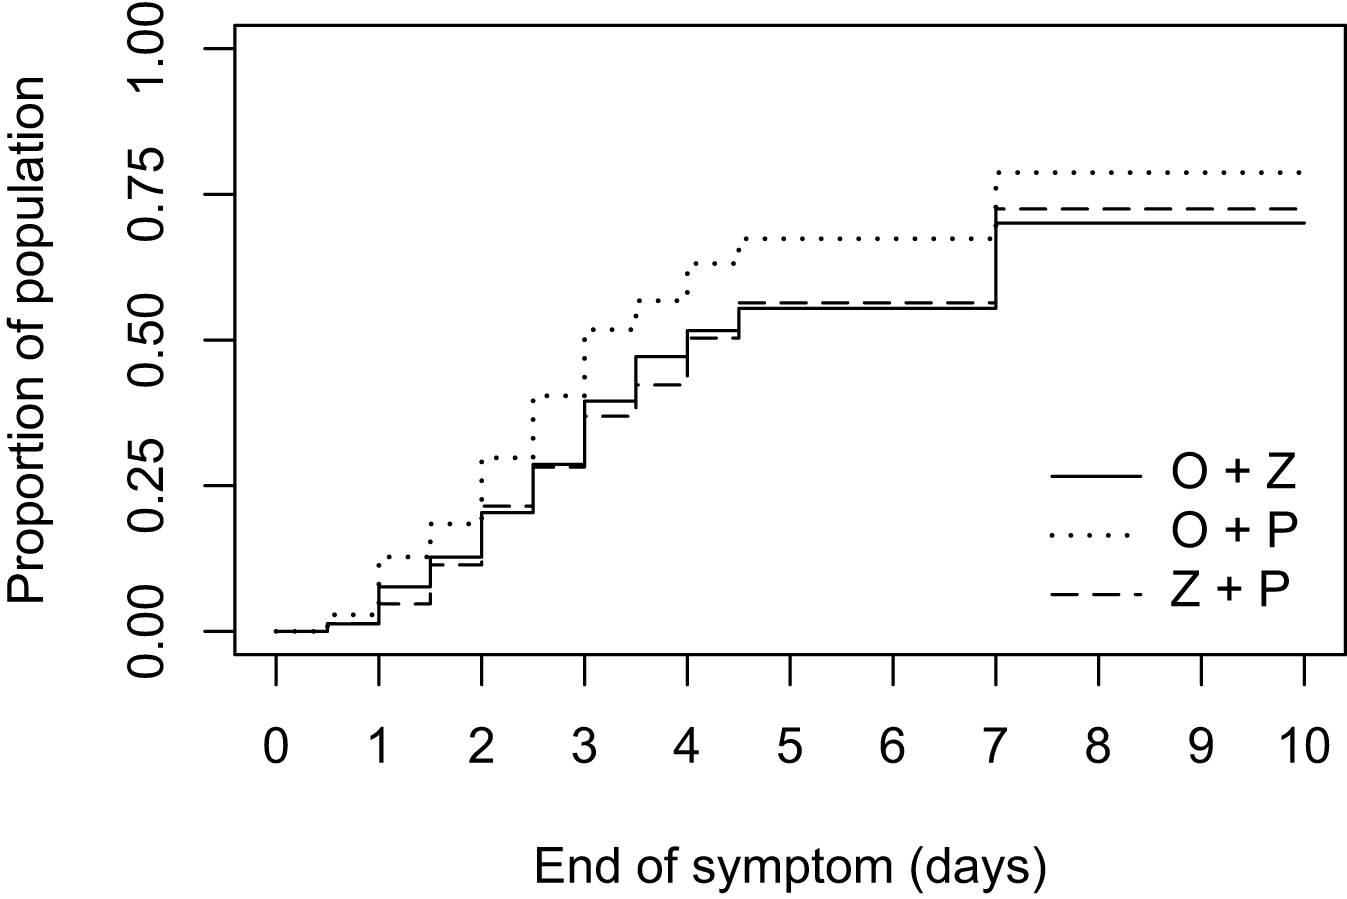 Proportion of the 447 influenza A-infected patients with alleviation of symptoms when treated with combined oseltamivir-zanamivir (plain line), oseltamivir plus placebo (dotted line), or zanamivir plus placebo (dashed line).